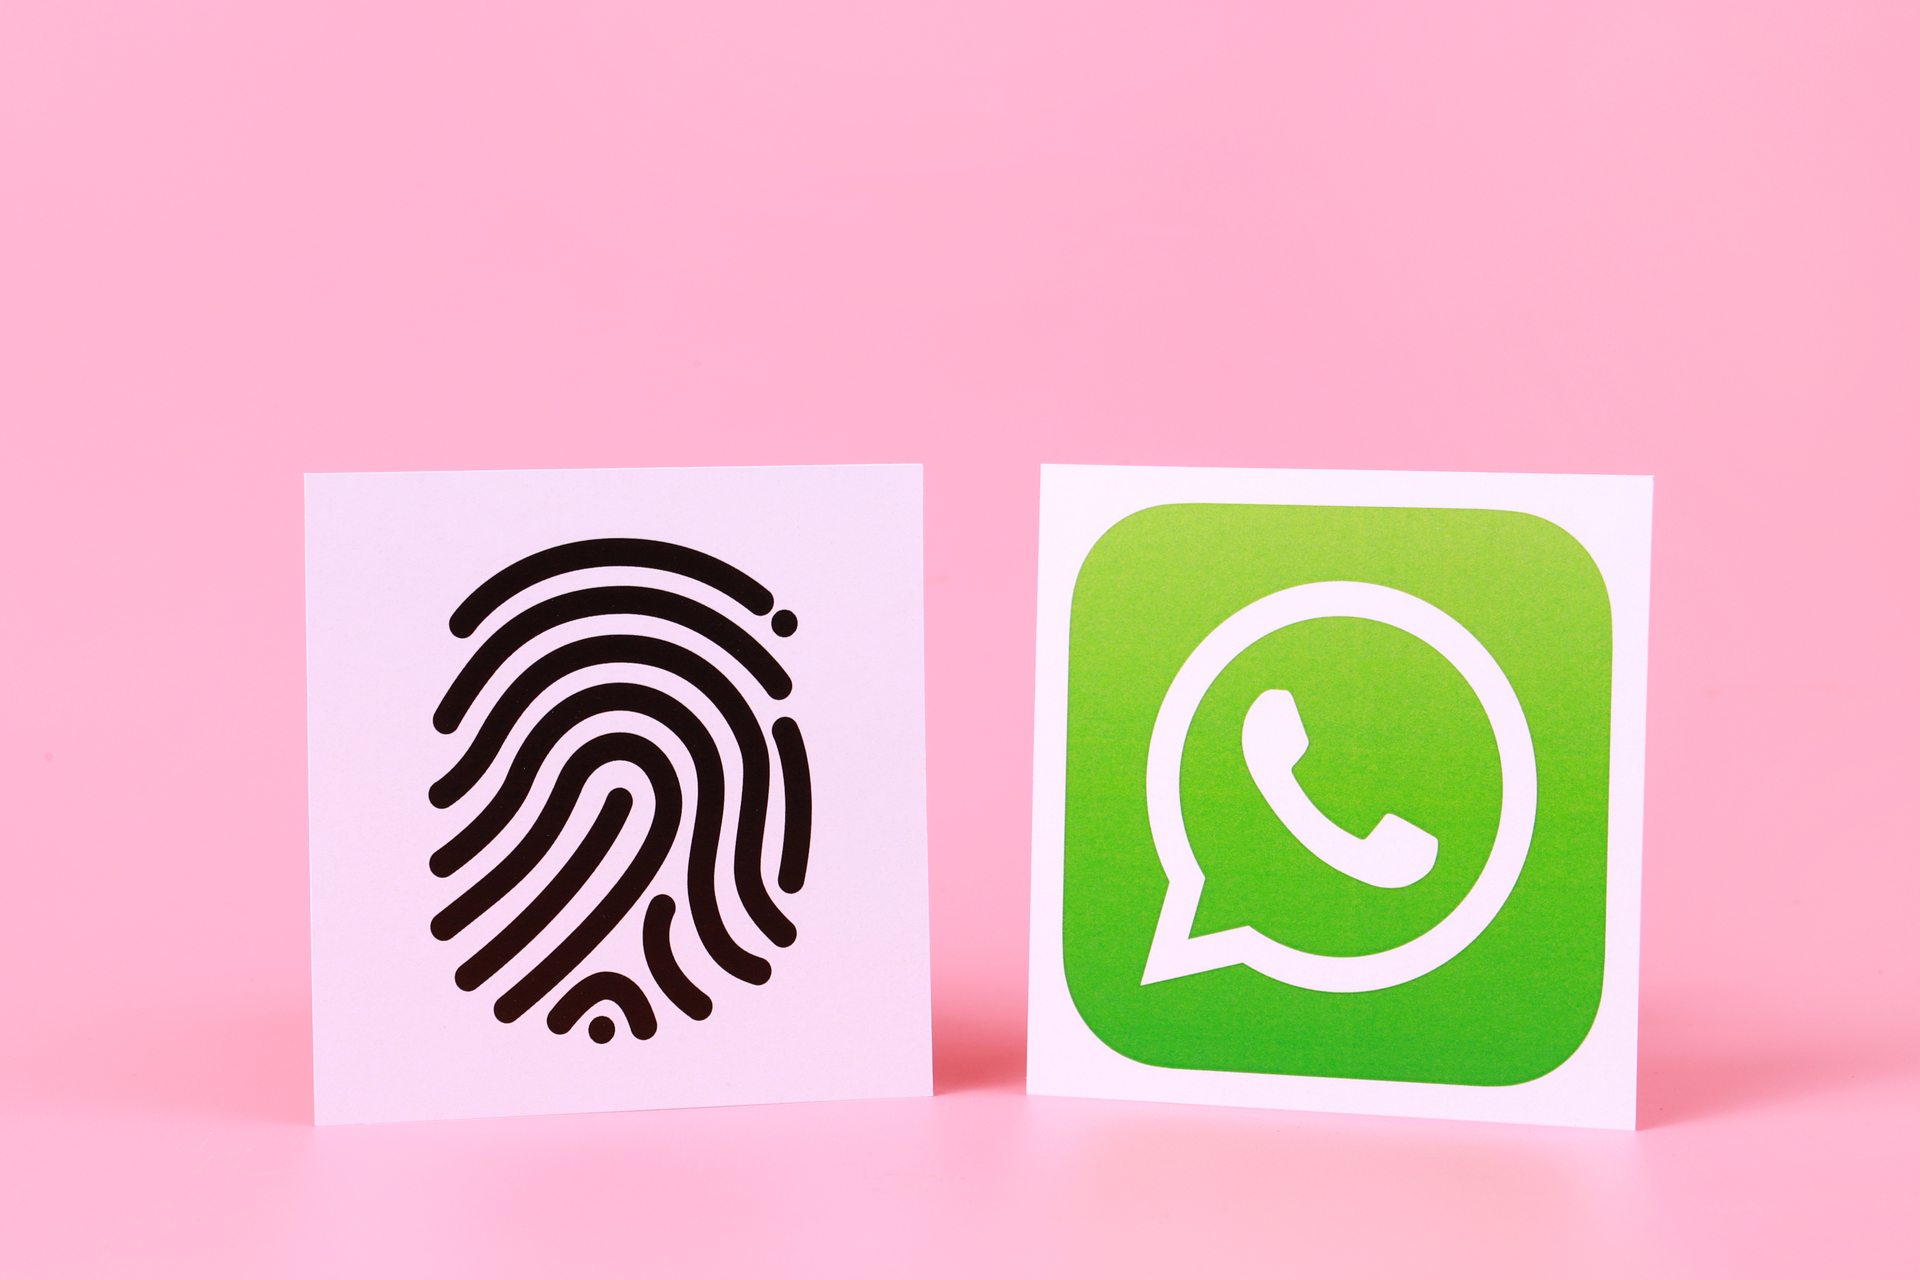 WhatsApp fingerprint authentication bolsters Android Beta security